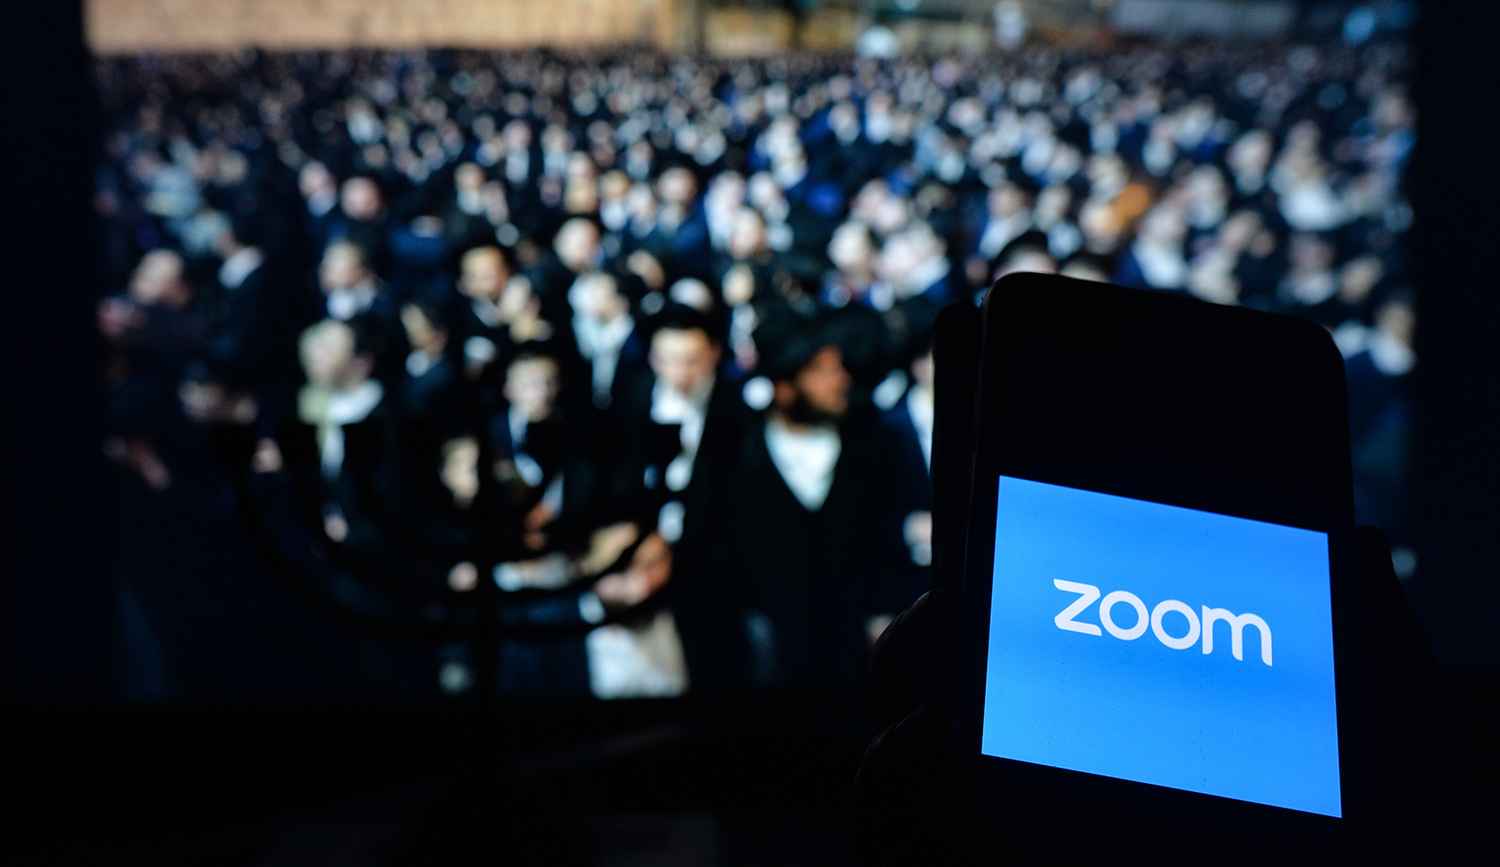 In Rejecting the Zoom Seder, What Did Orthodox Jews Affirm?